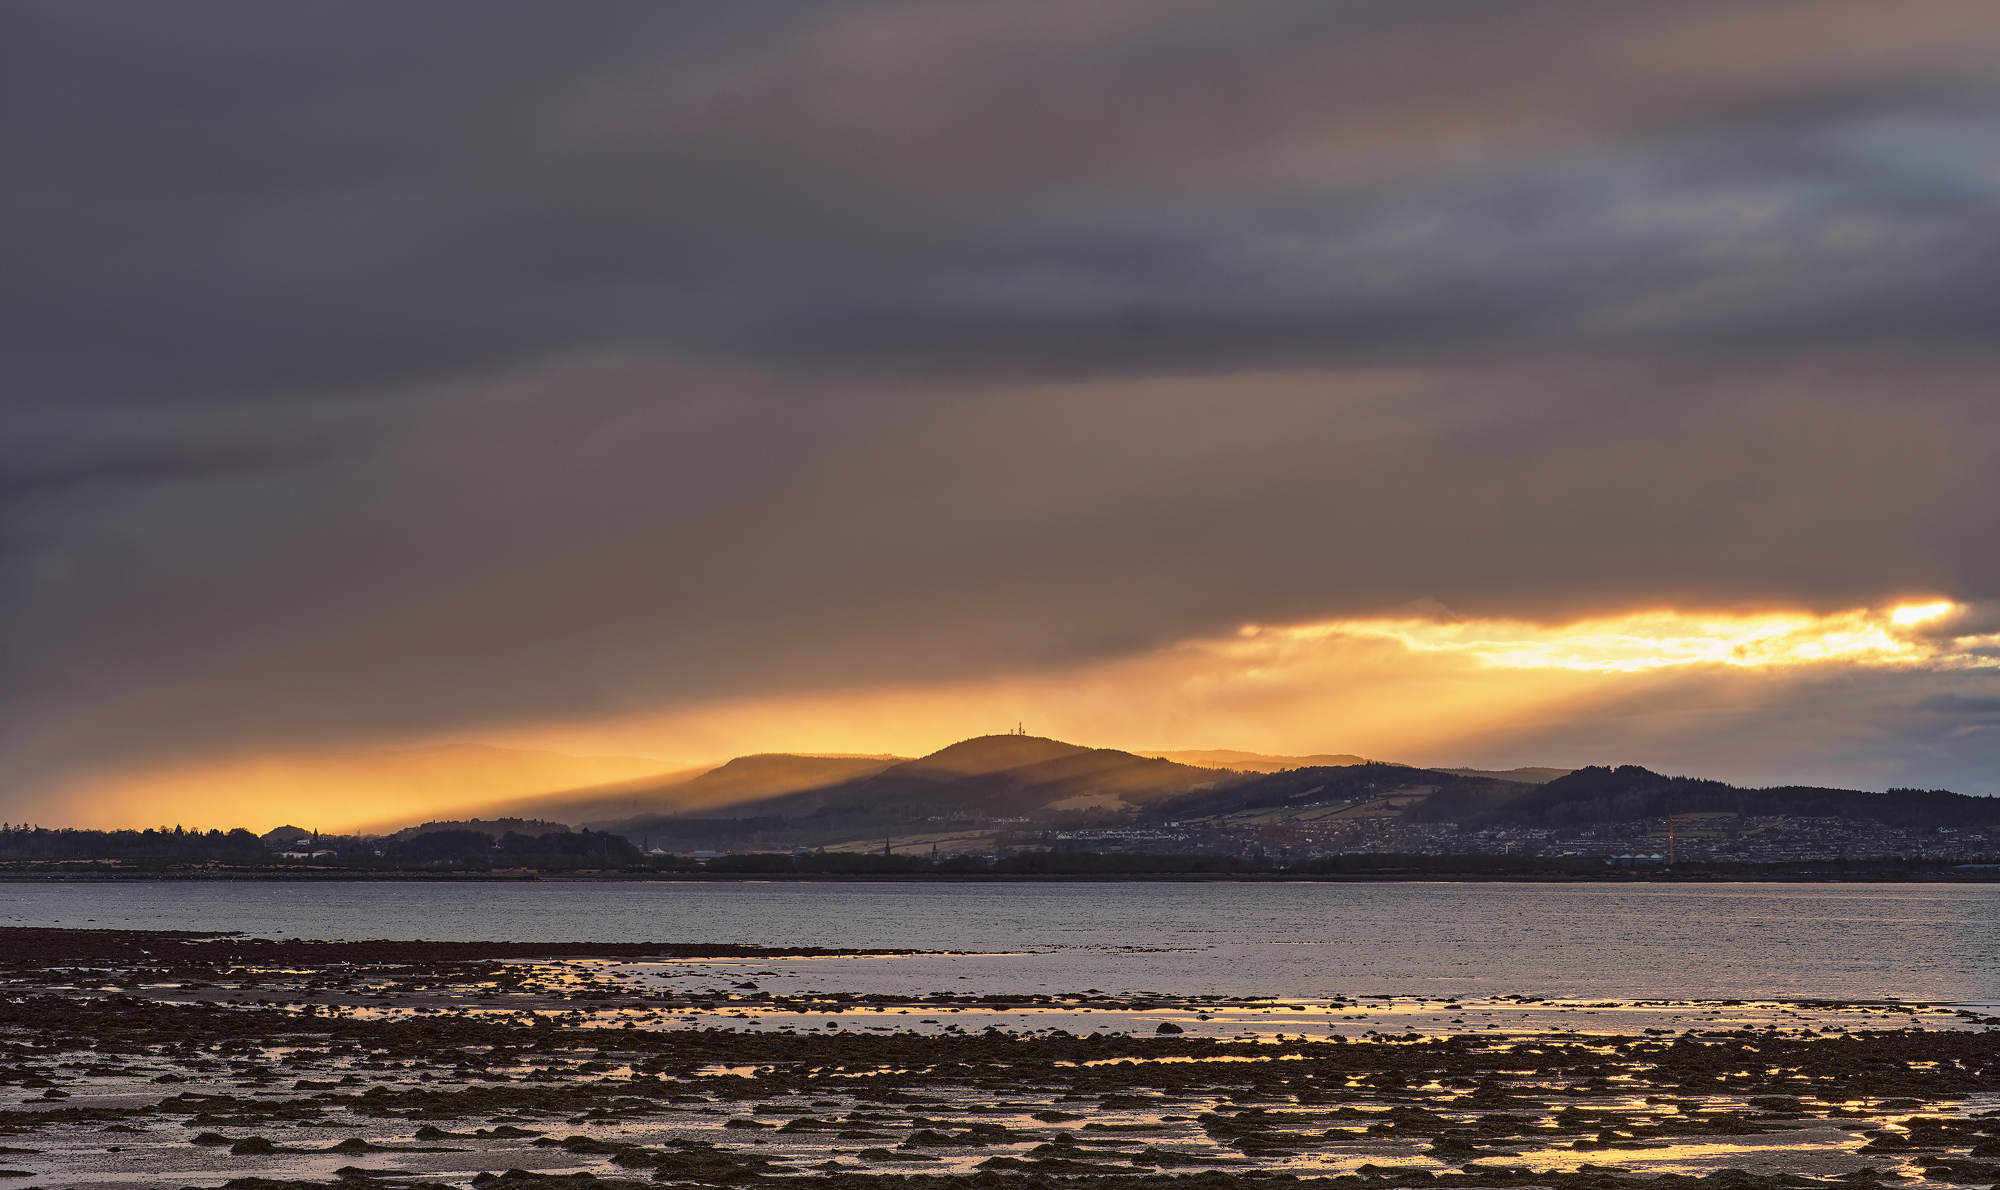 After a wee bit of planning I decided on a visit to a new location for a winter sunset close to Inverness on the Moray Firth...